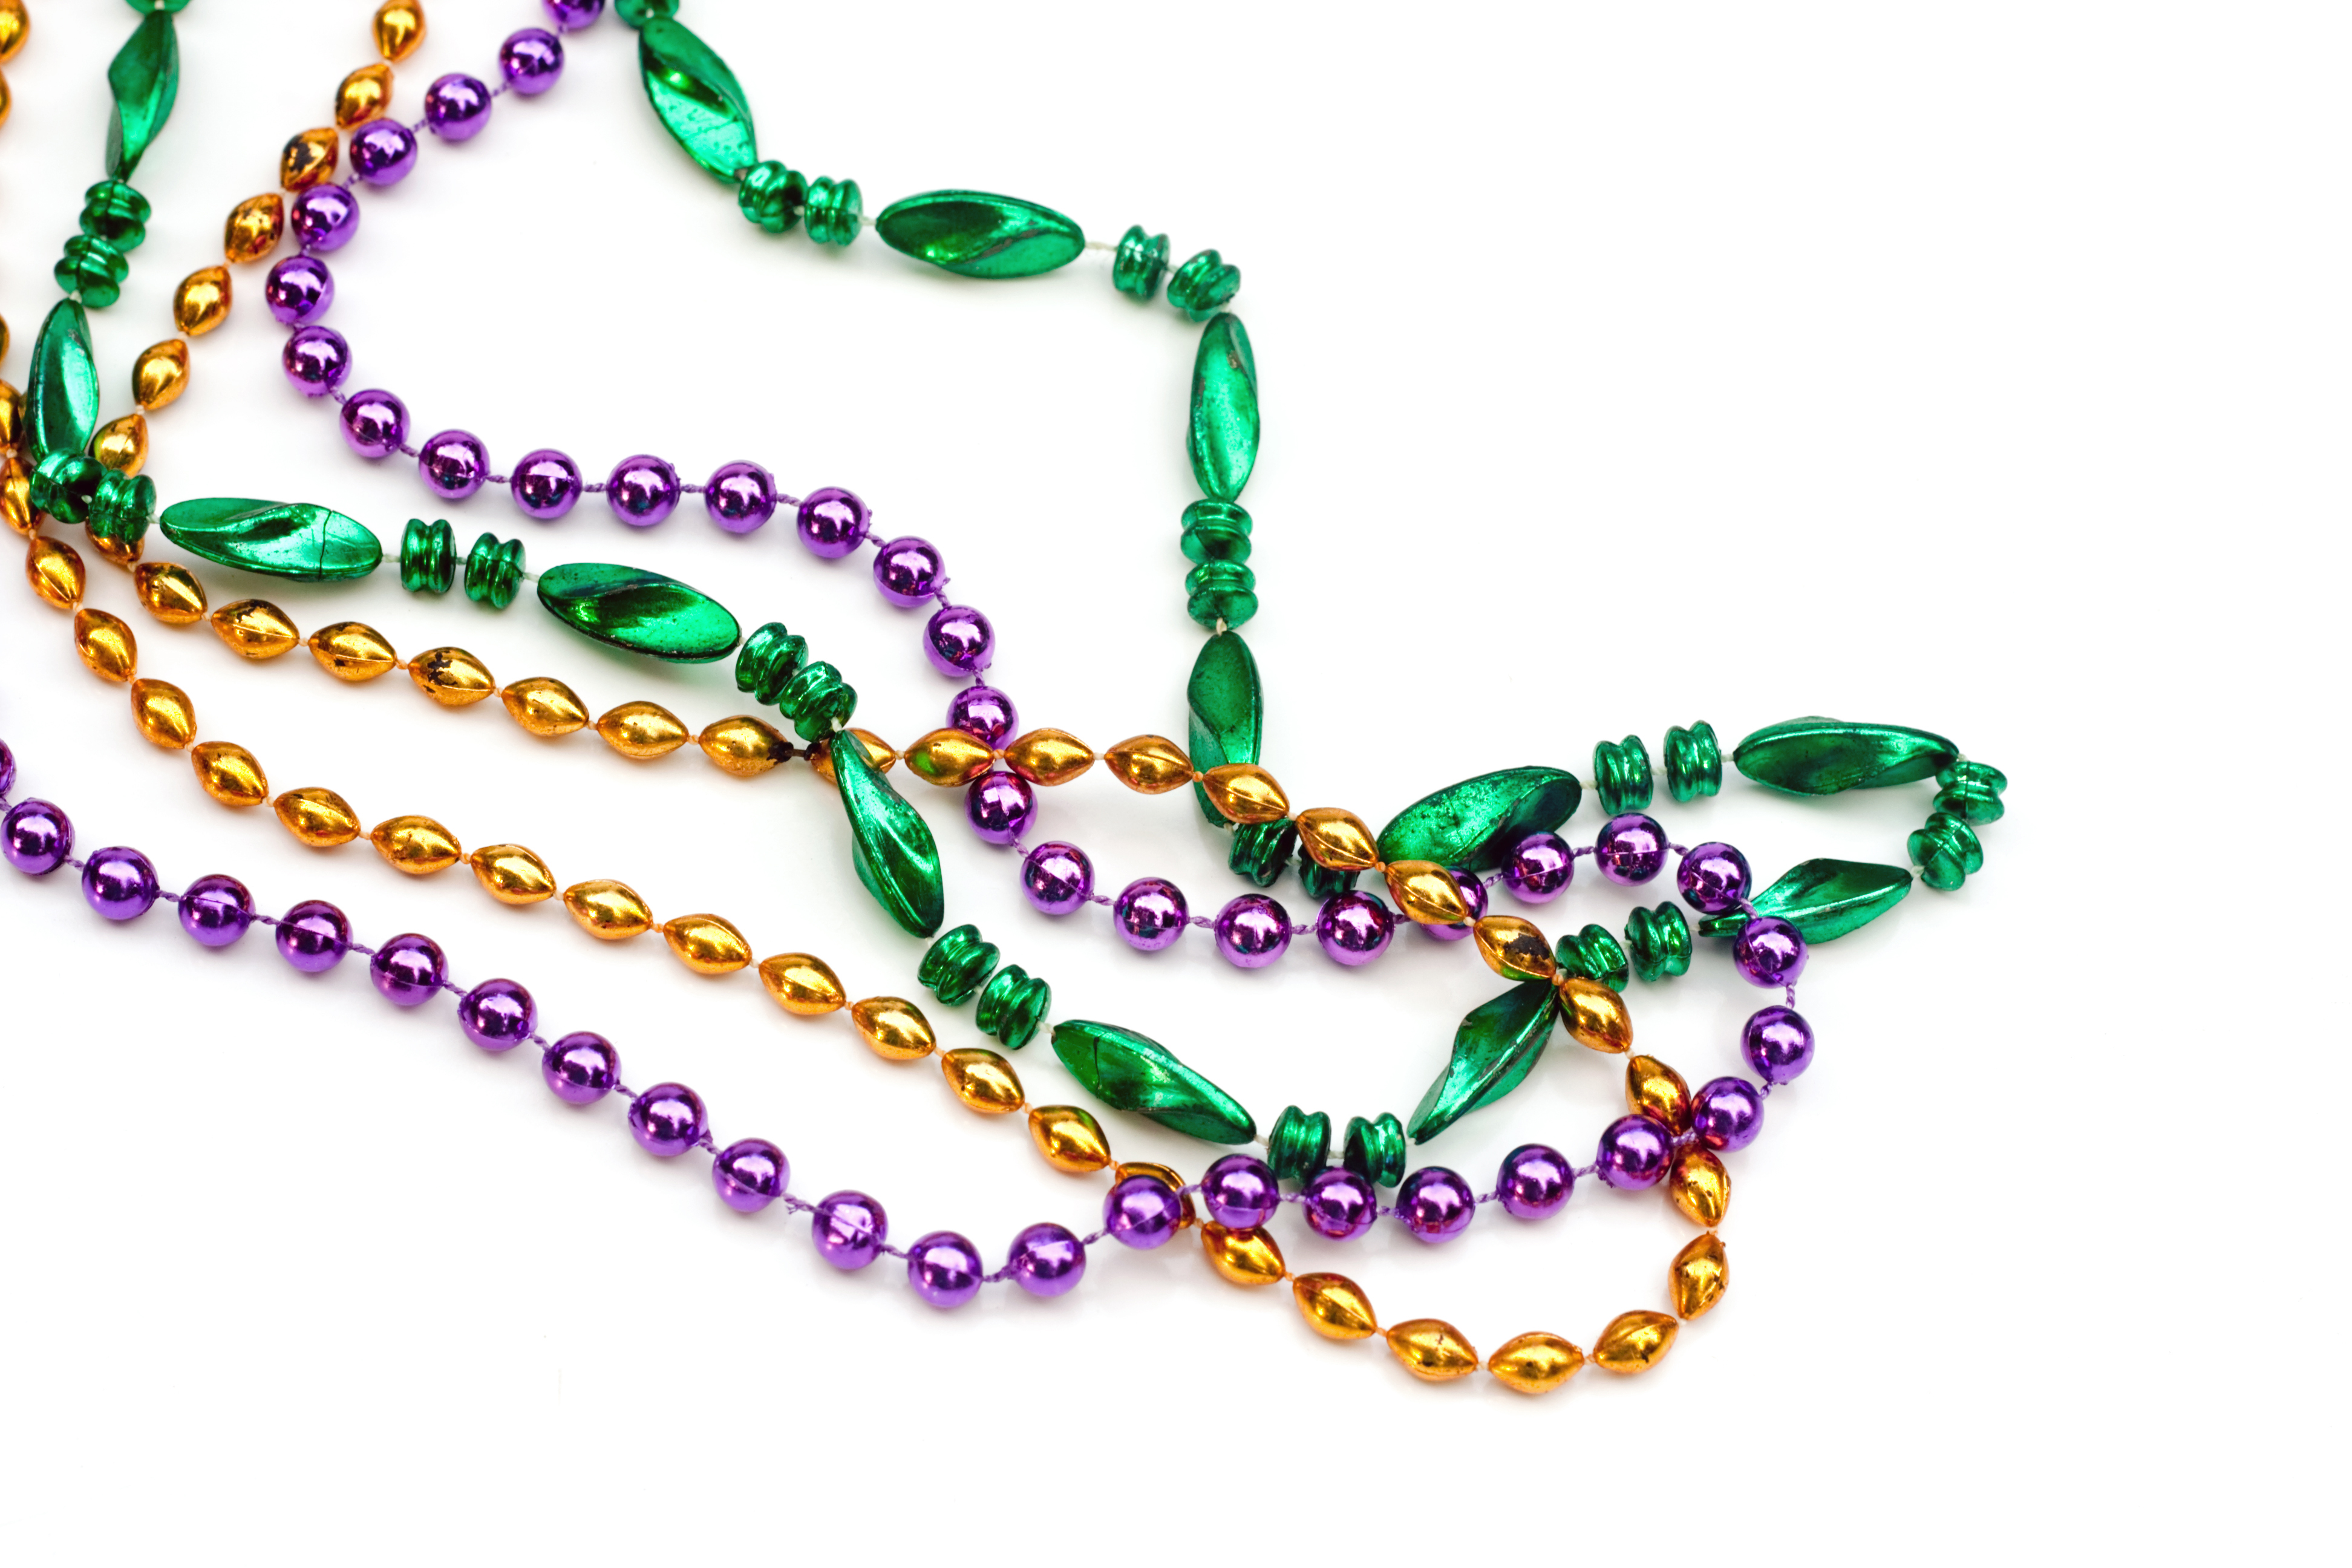 mardi gras beads purple green gold